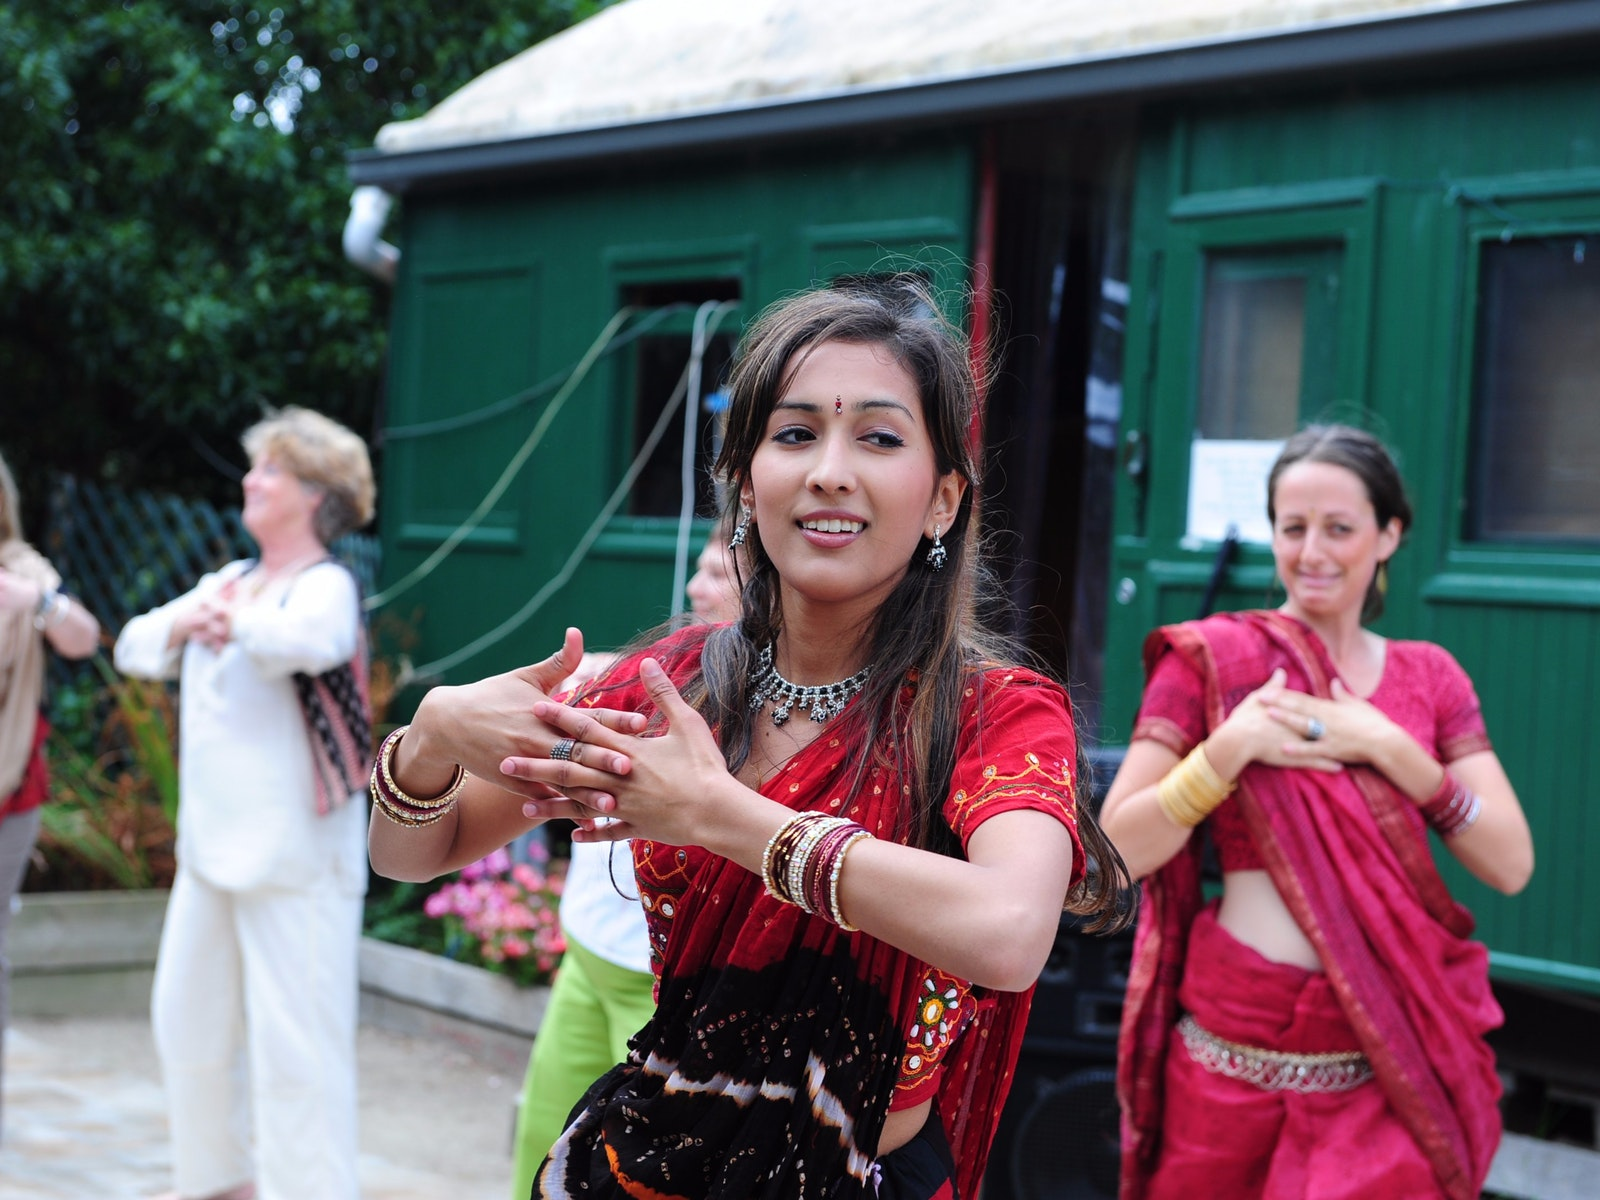 Bollywood dancing at Nazaaray Estate Winery